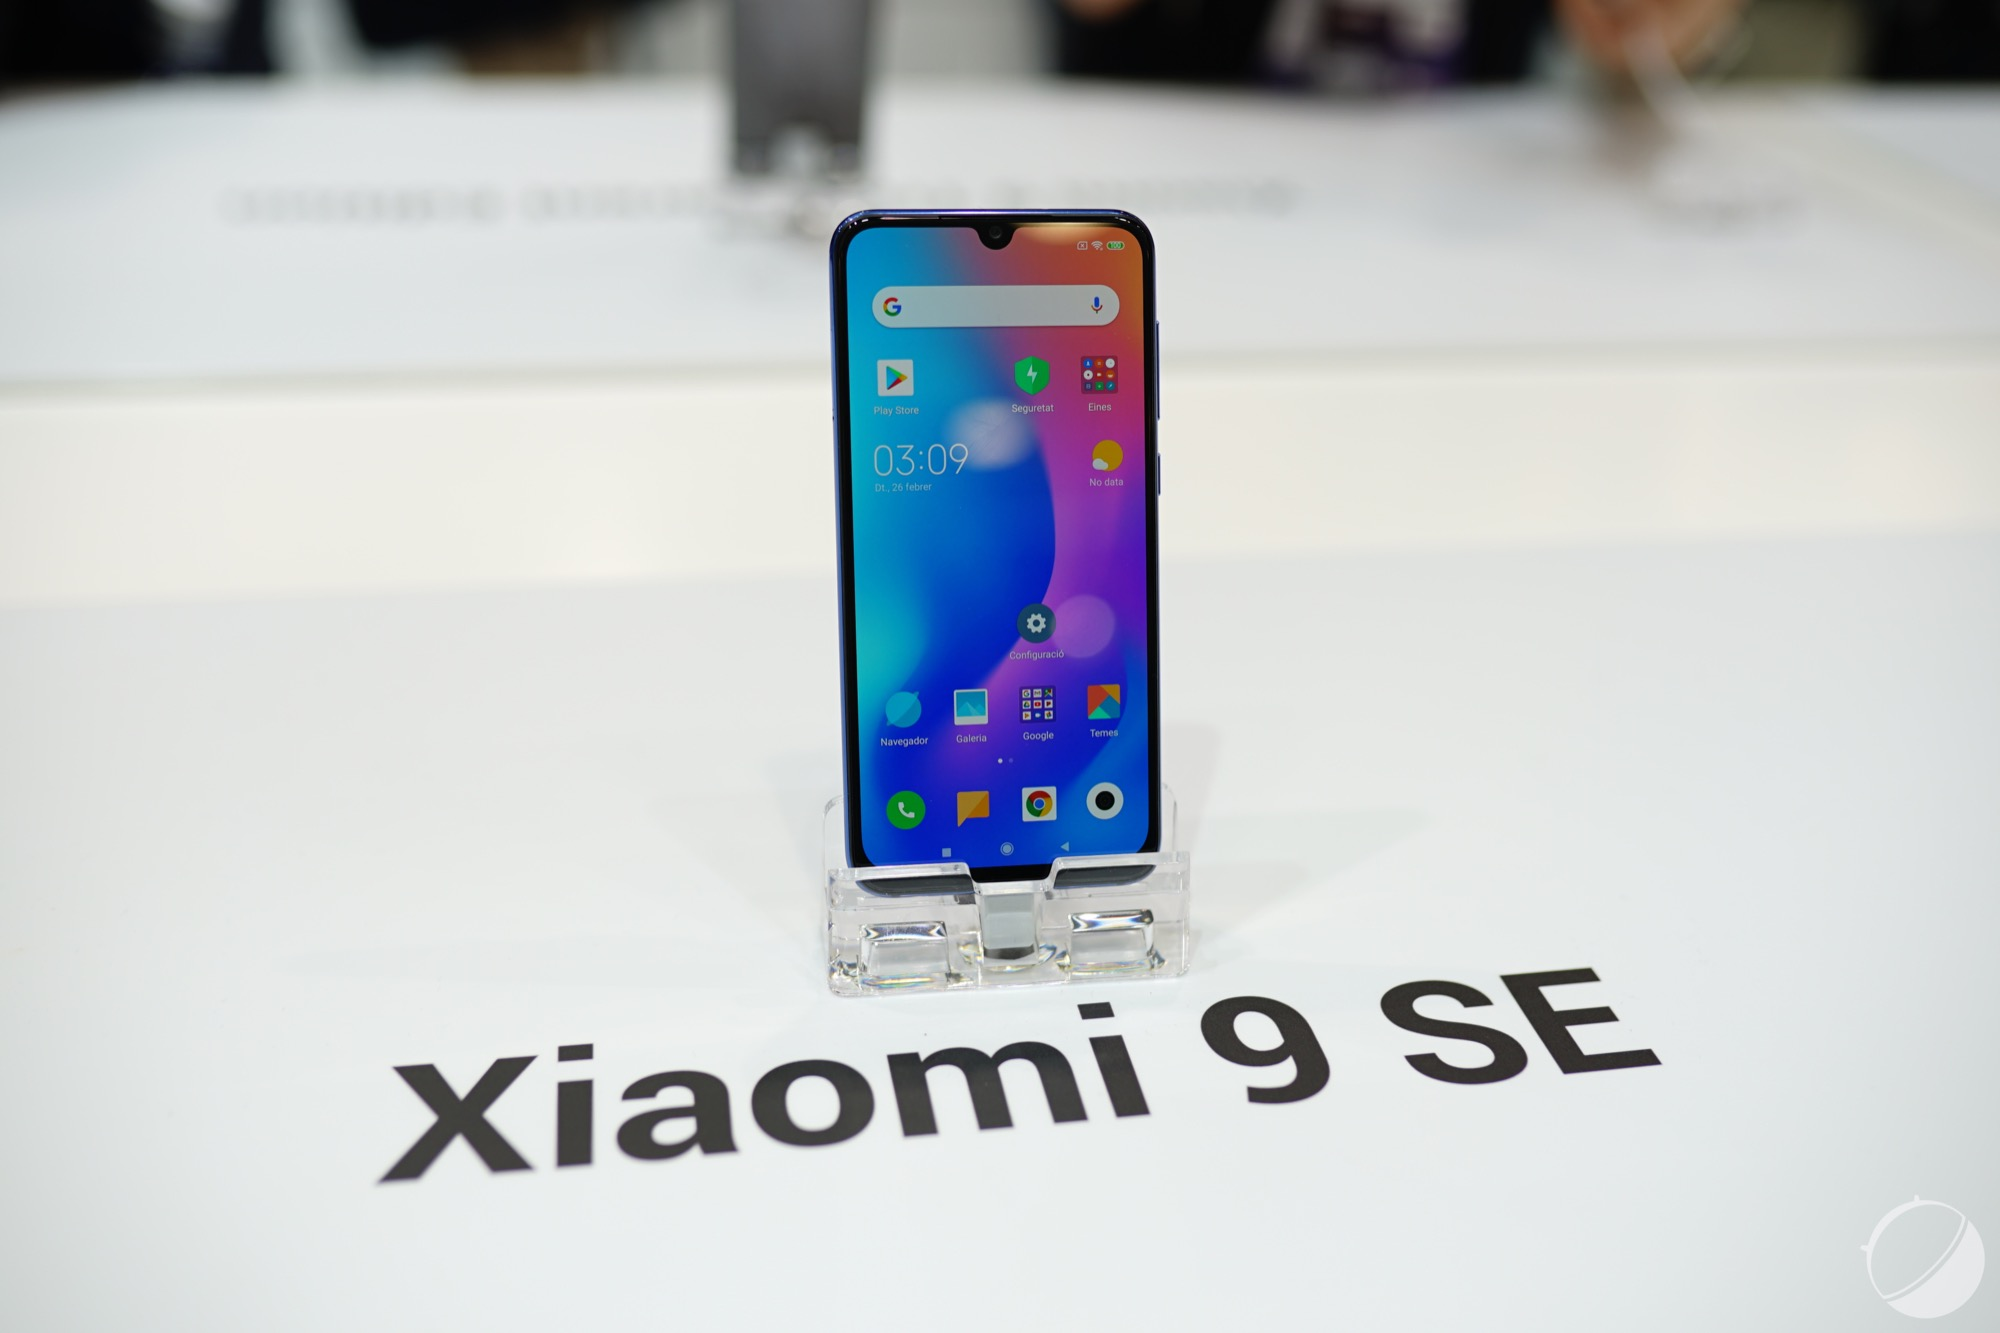 xiaomi mi 9 se frandroid c dsc00832 - The 10 most popular Xiaomi smartphones (and more) of 2019 on Frandroid - Frandroid